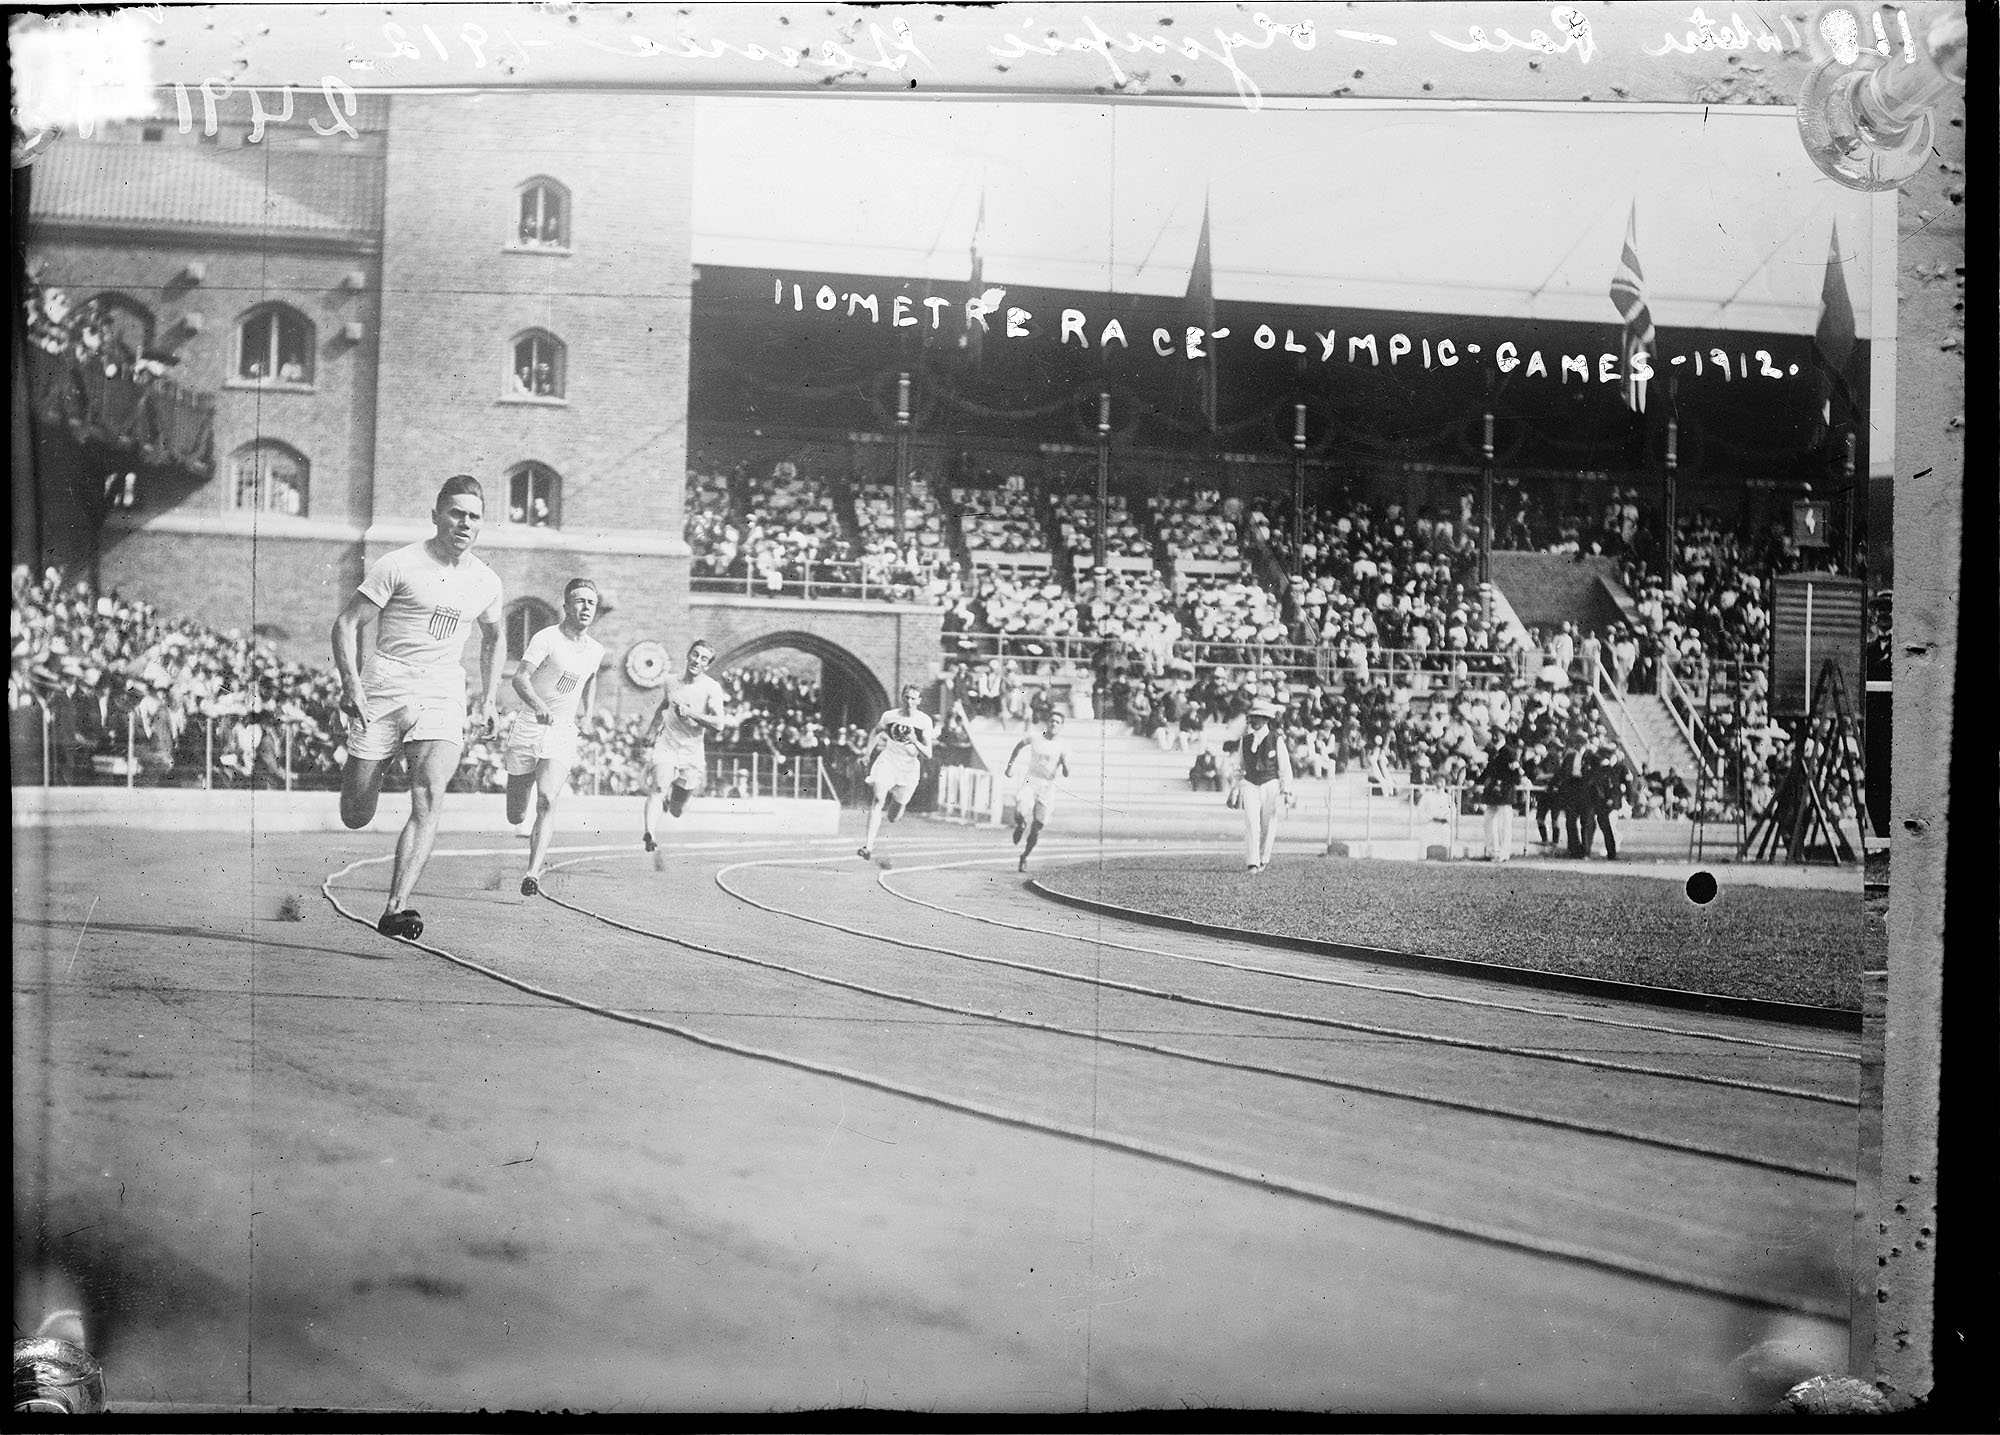 110 metre race - Olympic Games - 1912